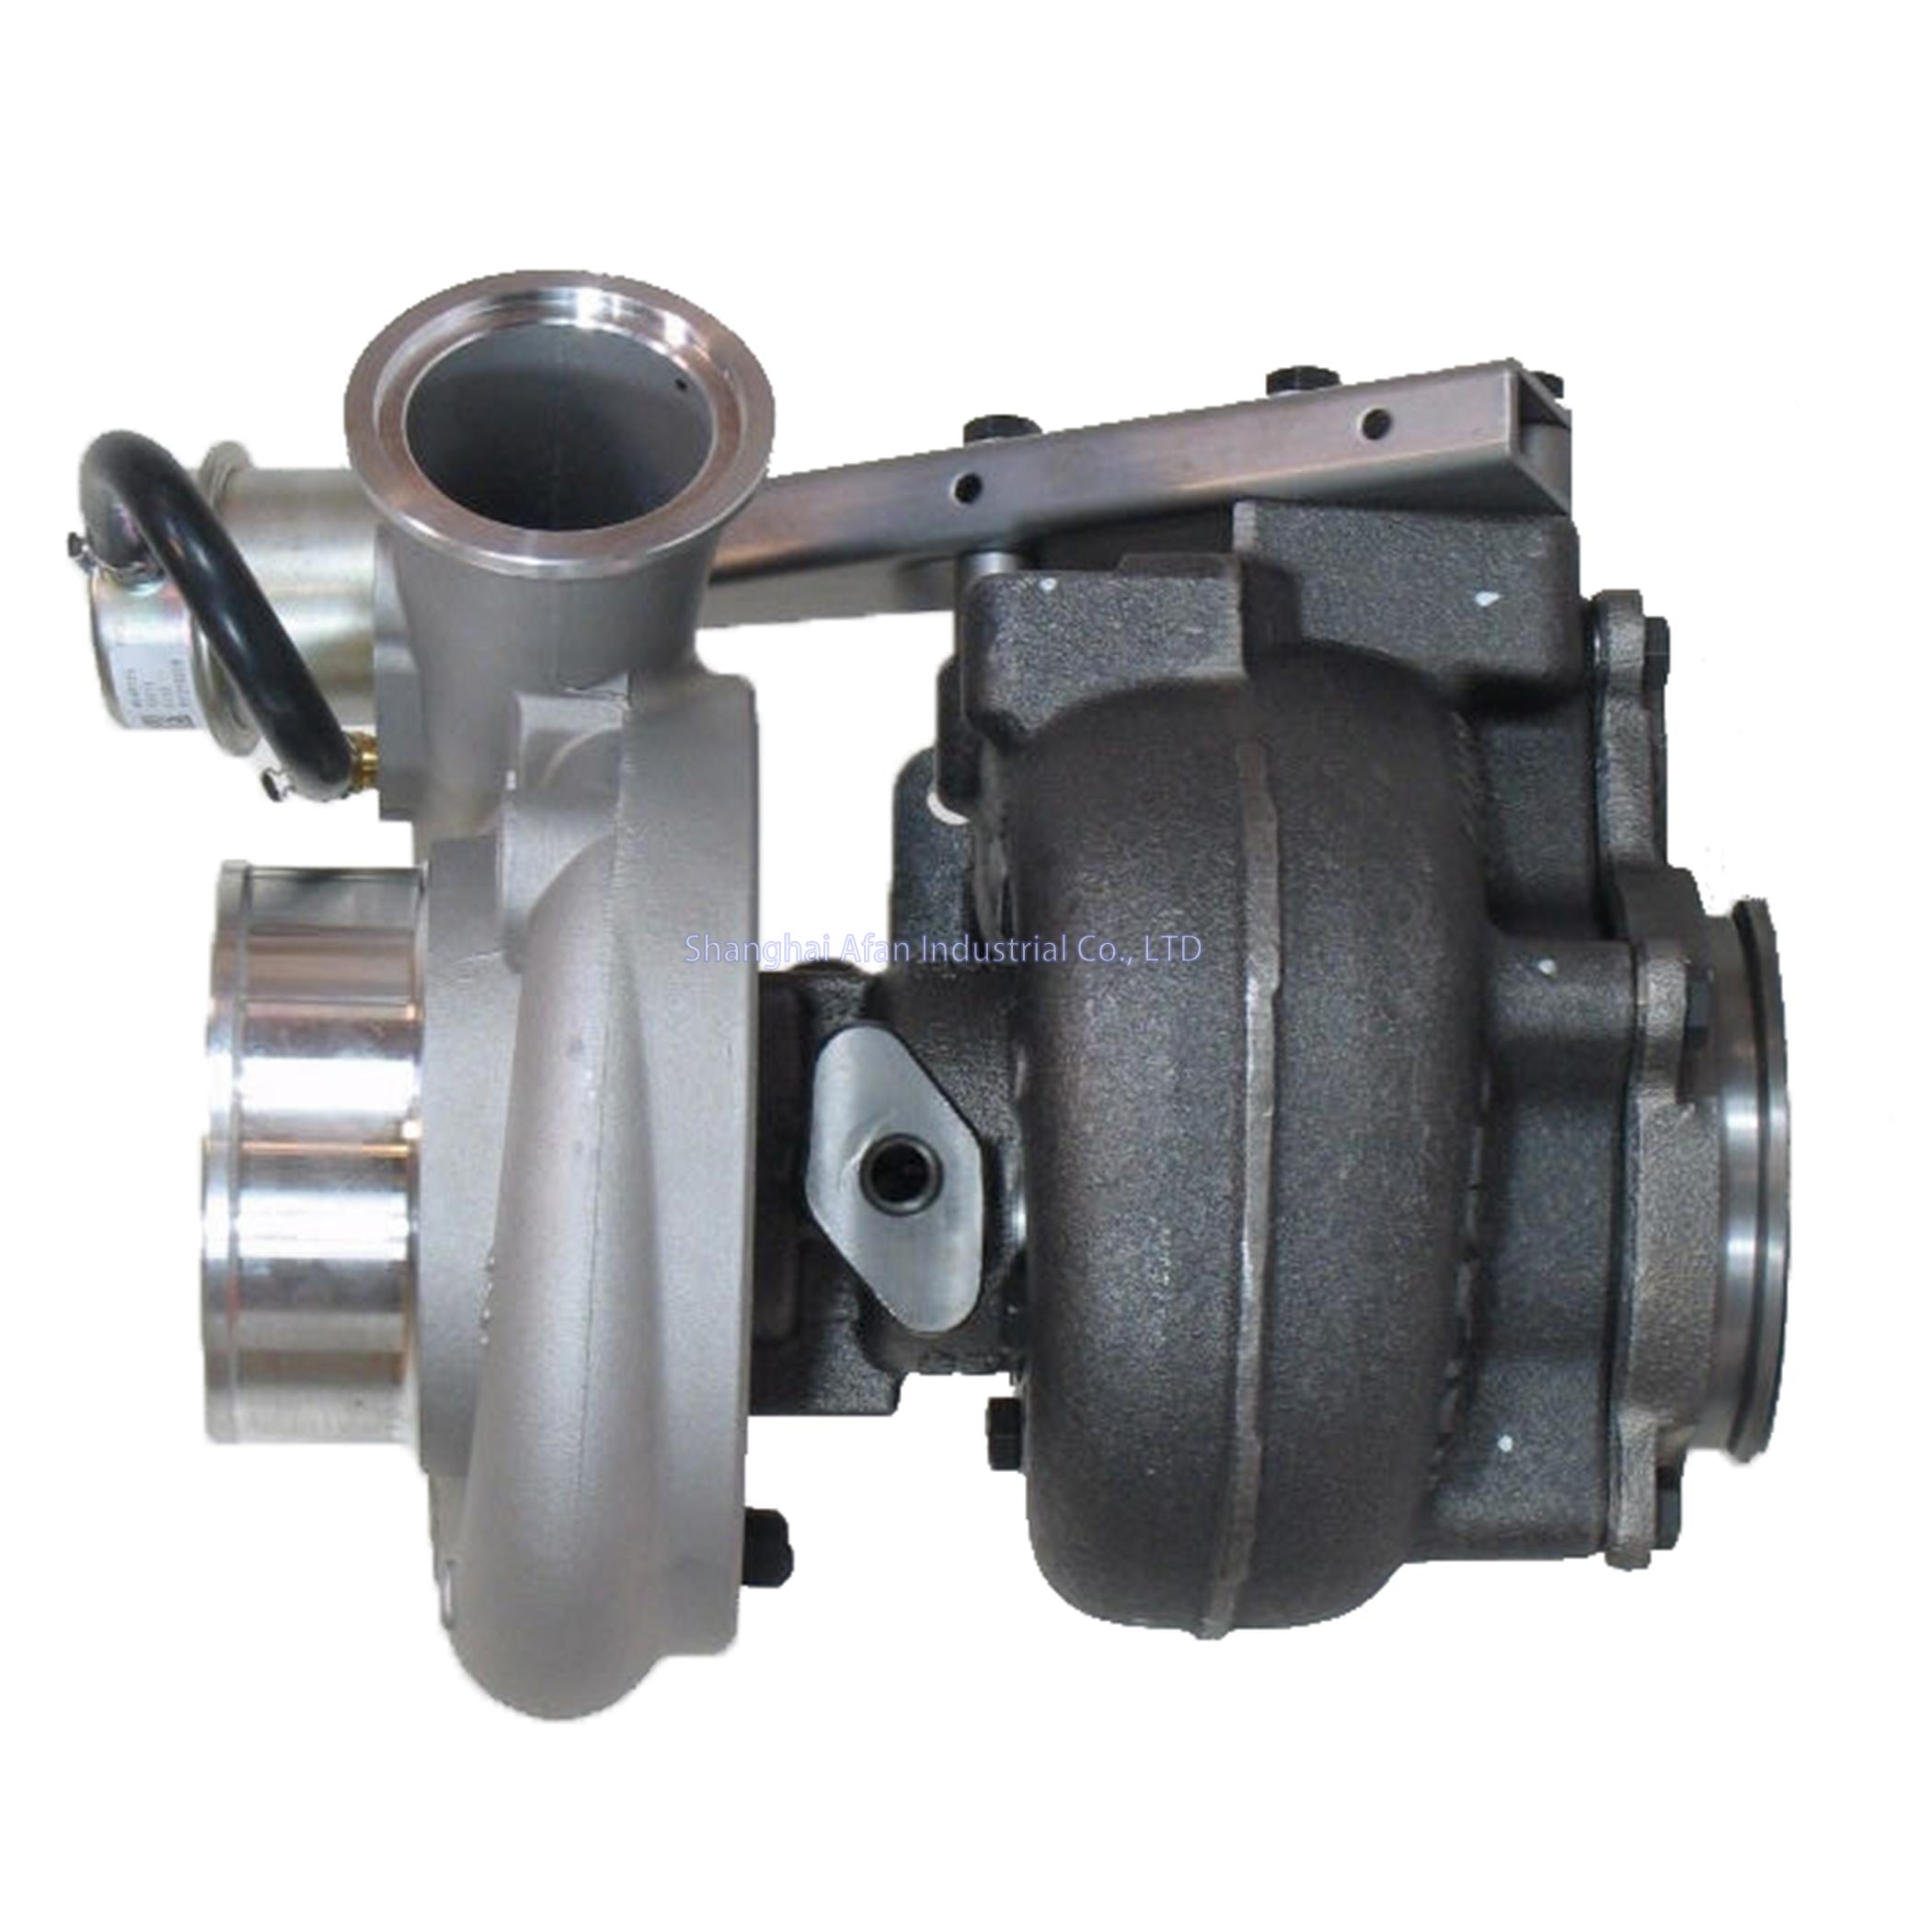 HX40W Turbocharger For CUMMINS 4045055 Turbo